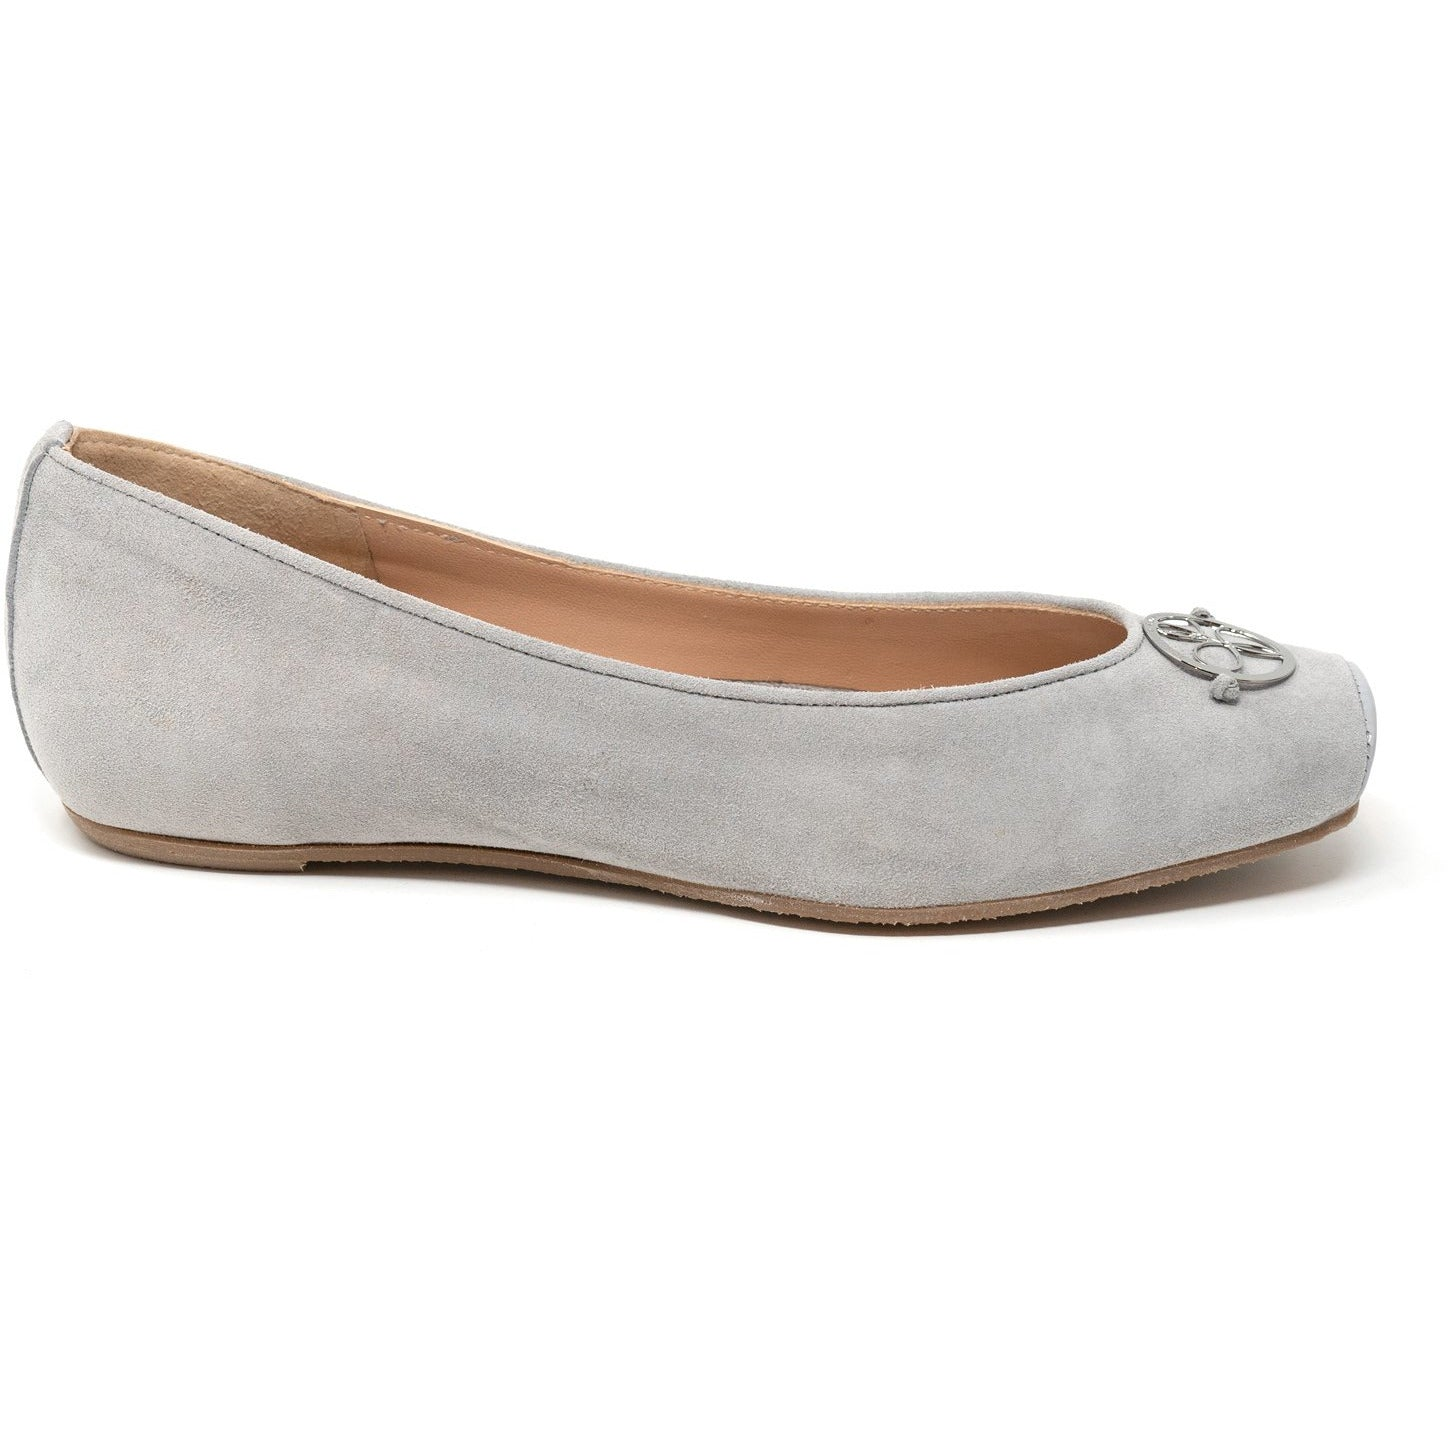 Women Ballerina Shoes with hidden heel in Suede Soft - Jennifer Tattanelli